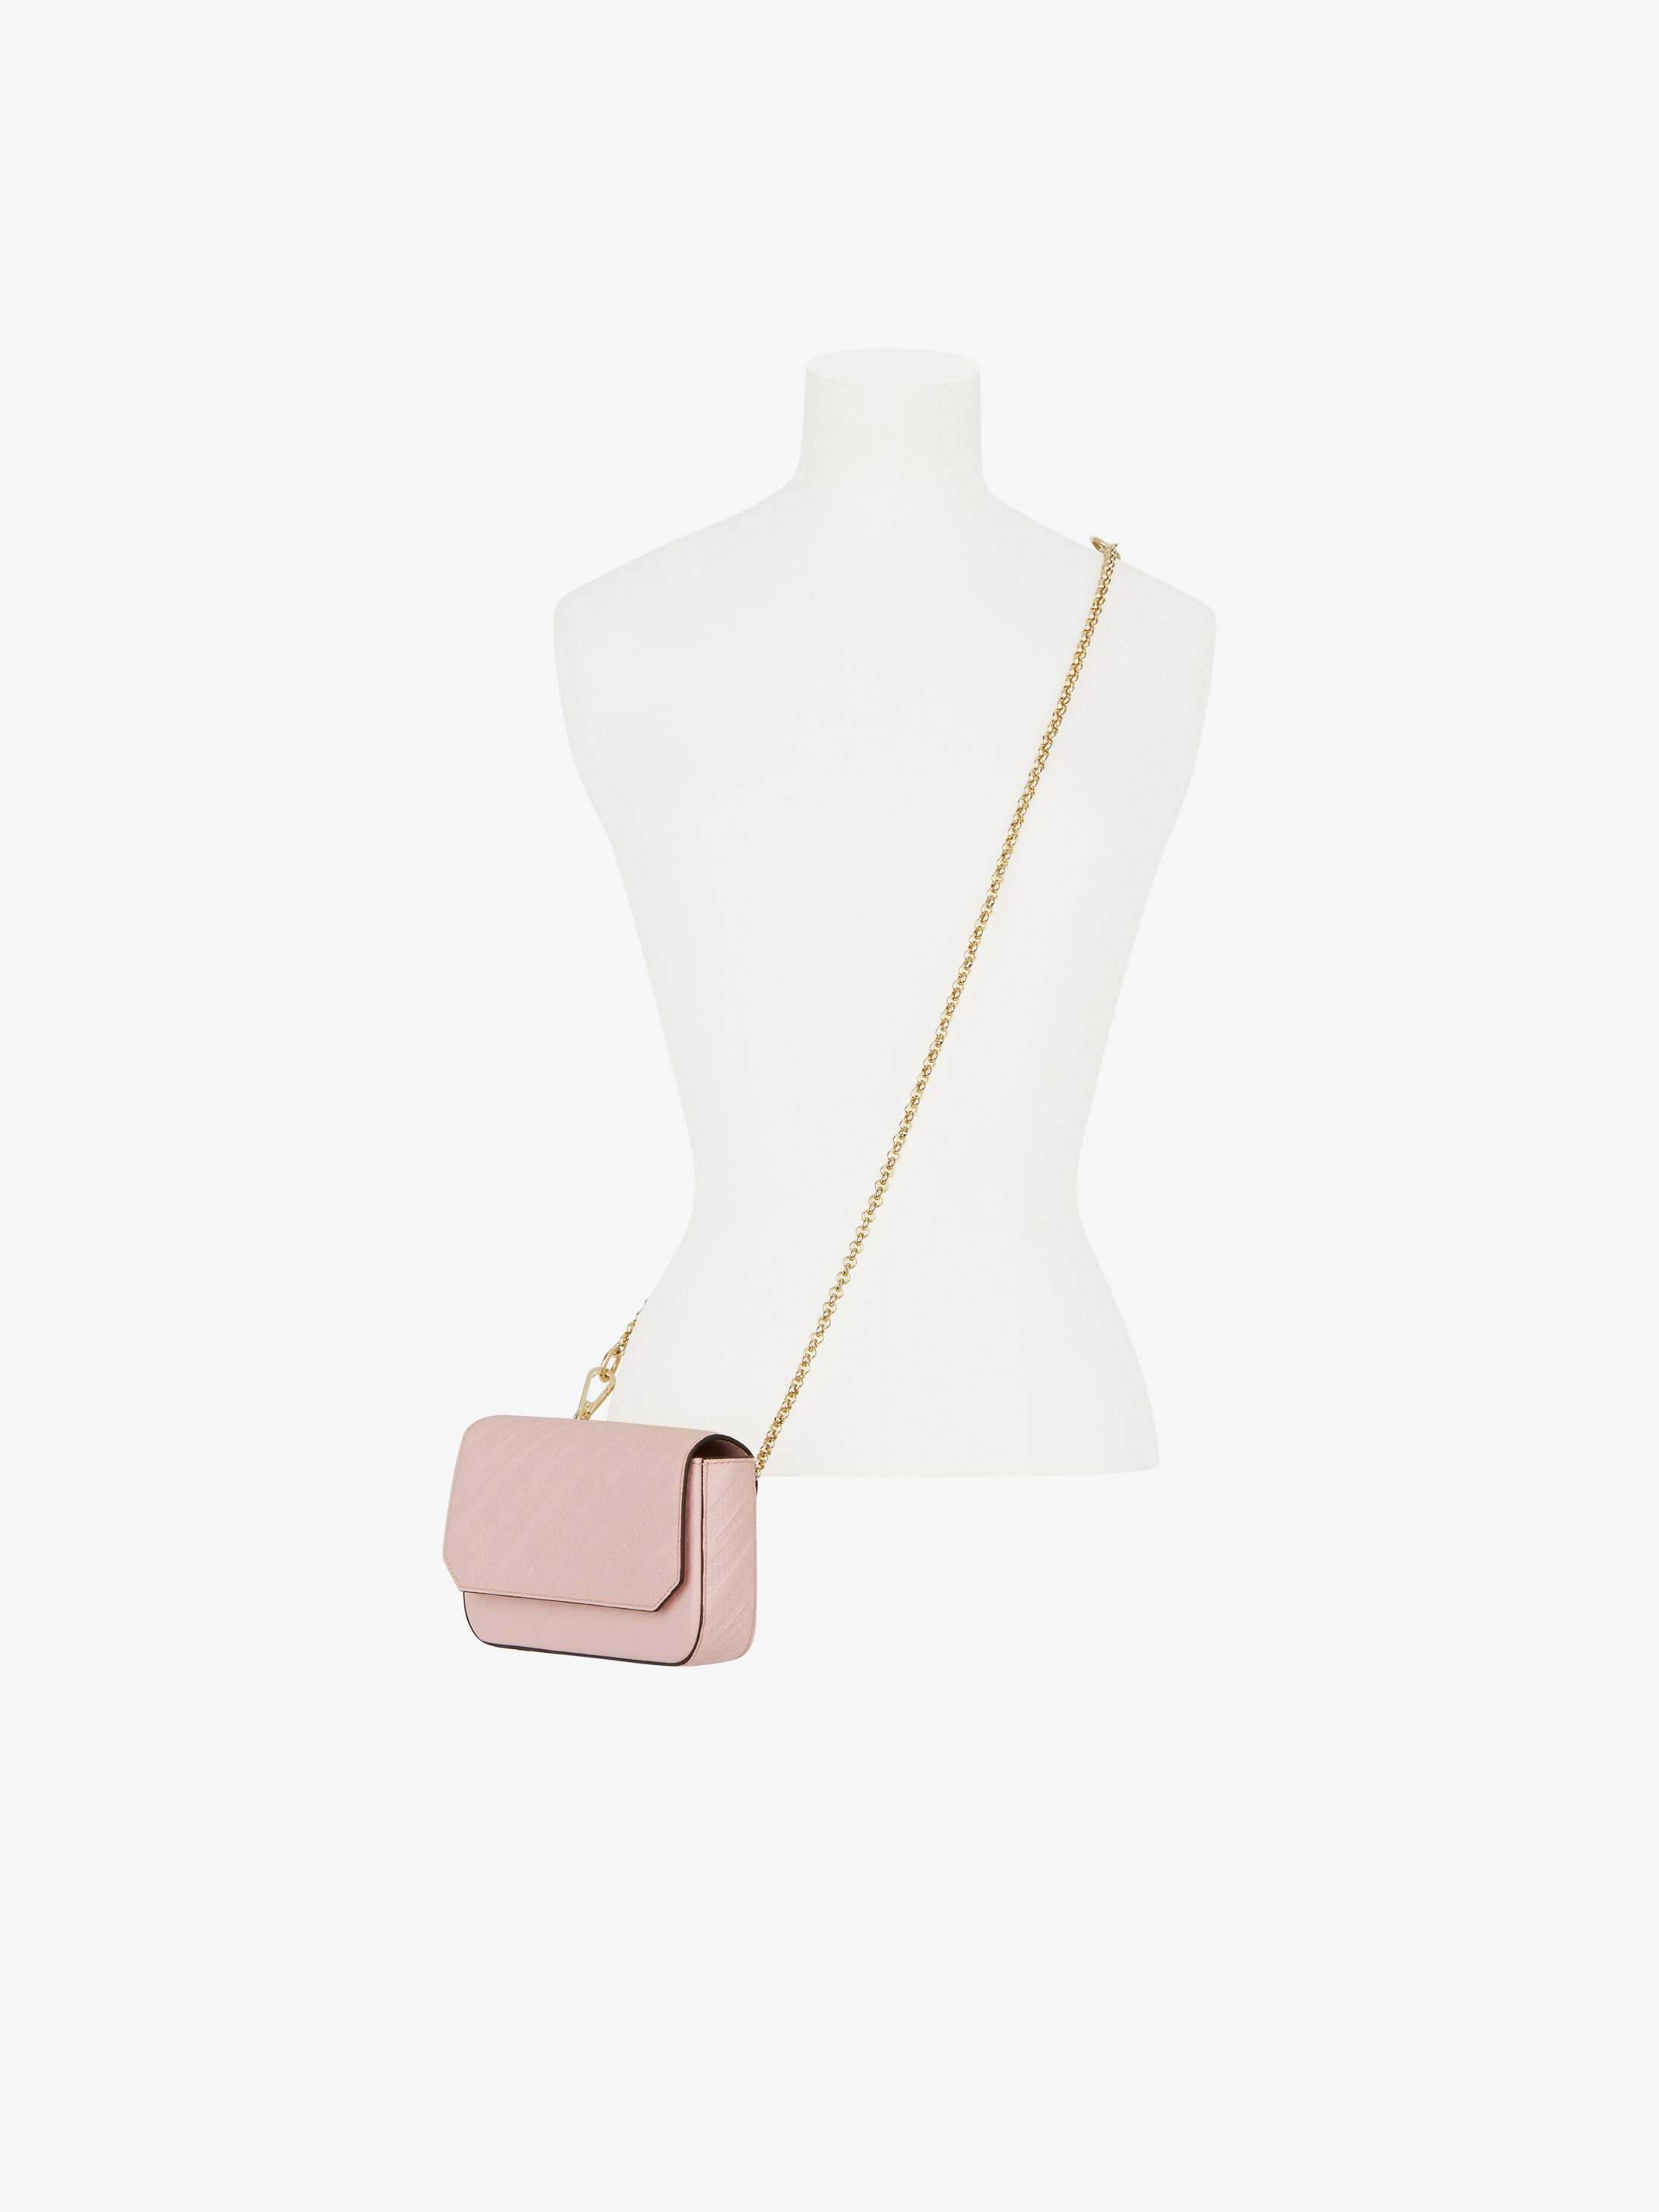 Bond pouch in GIVENCHY chain leather with chain strap